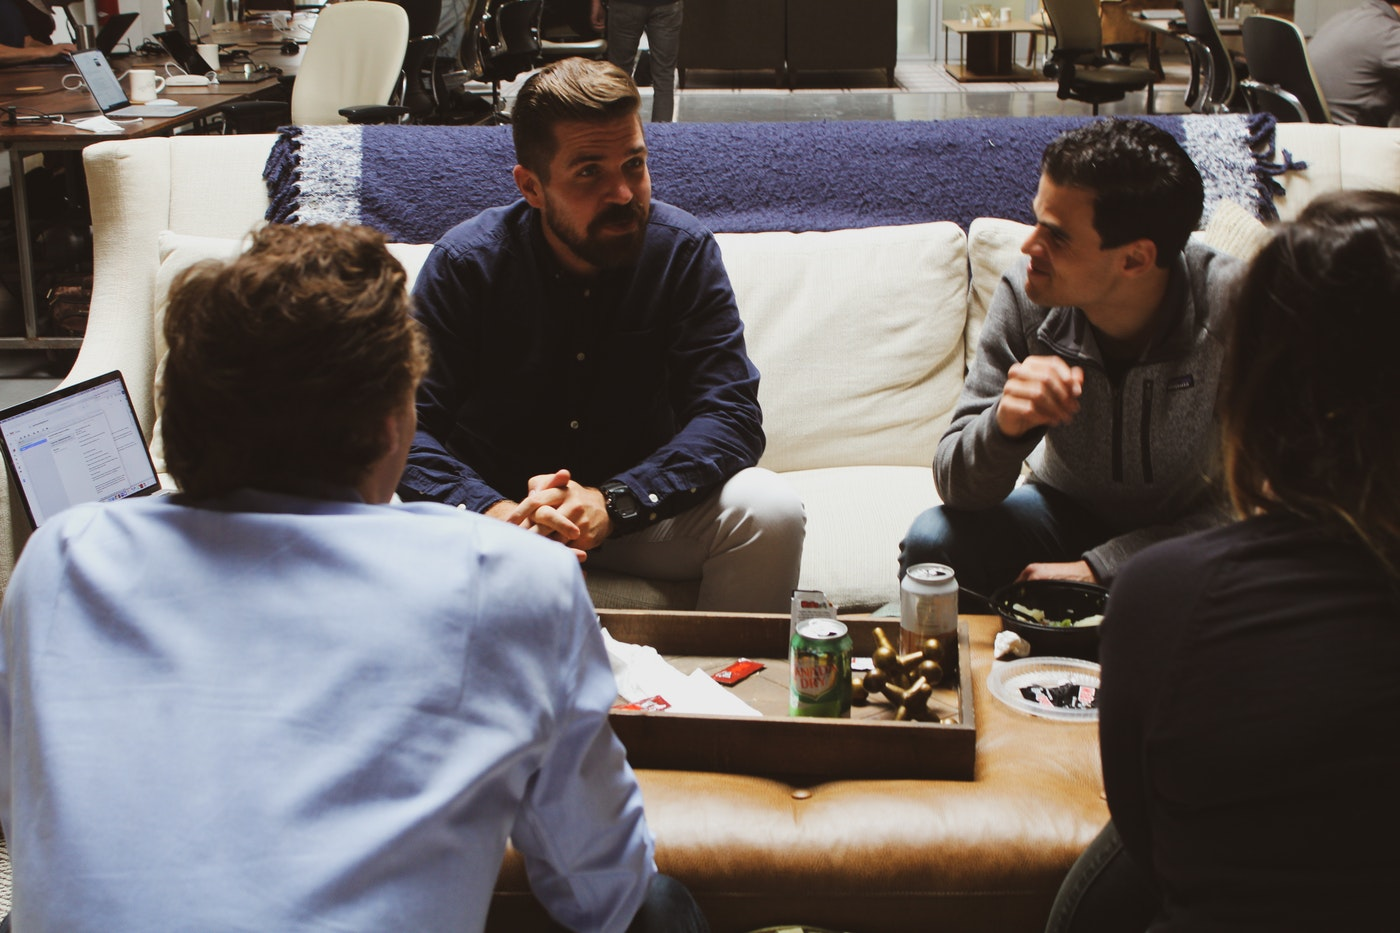 Different goals call for different types of meetings. Do you know which one you need to implement?